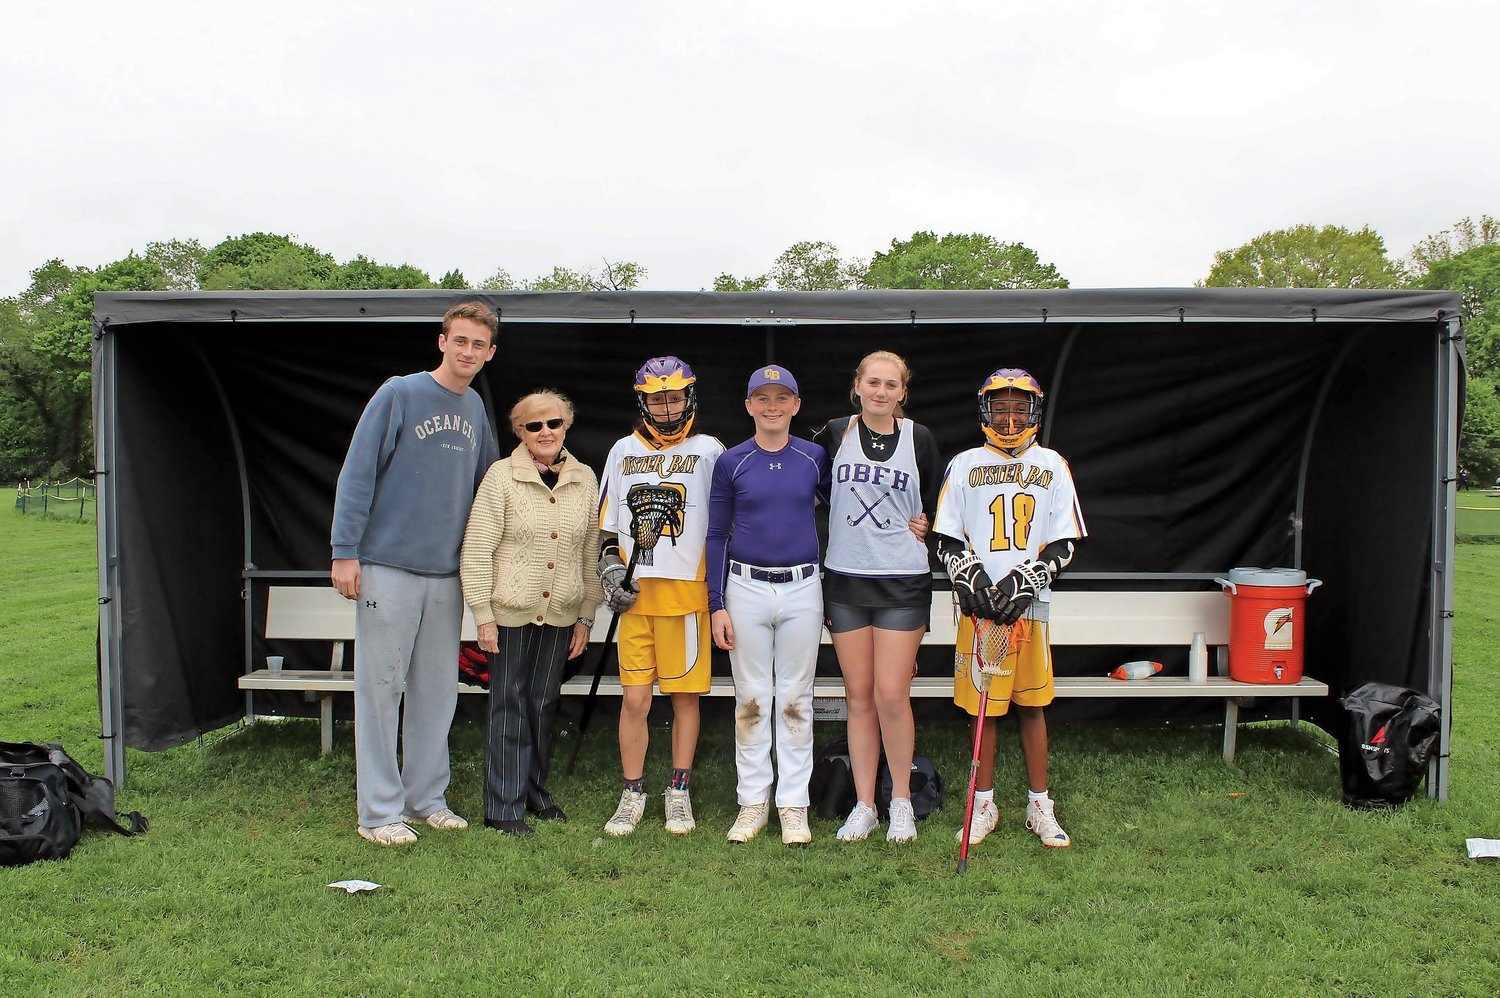 Sean O'Toole, Colette Coyne Melanoma Awareness Campaign founder Colette Coyne, Caleigh, and Colin O'Toole and a few lacrosse players who will benefit from the new sun shields.